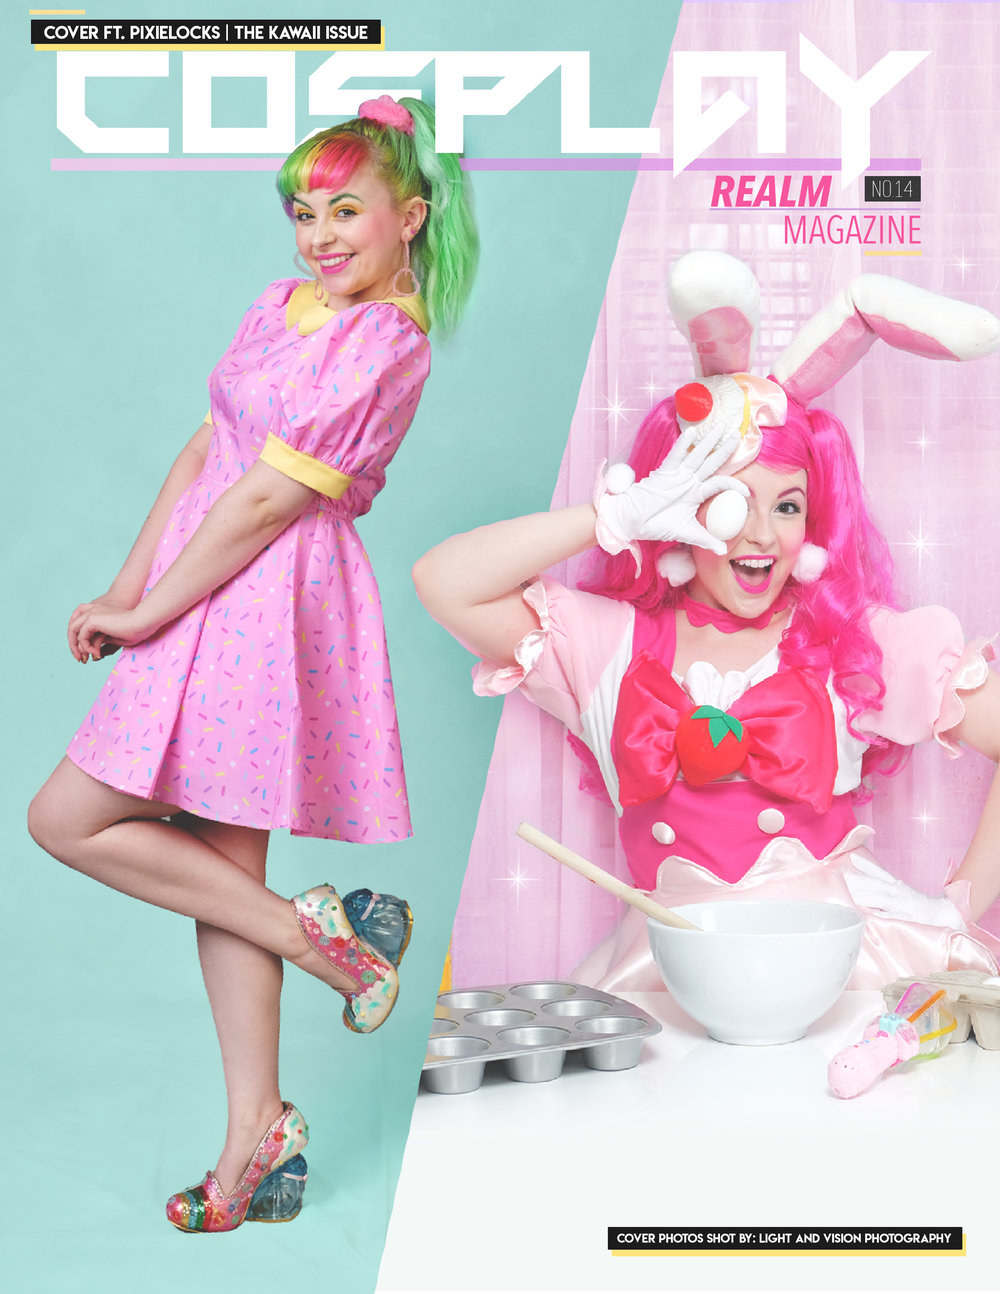 CRM No. 14  - The Kawaii Issue